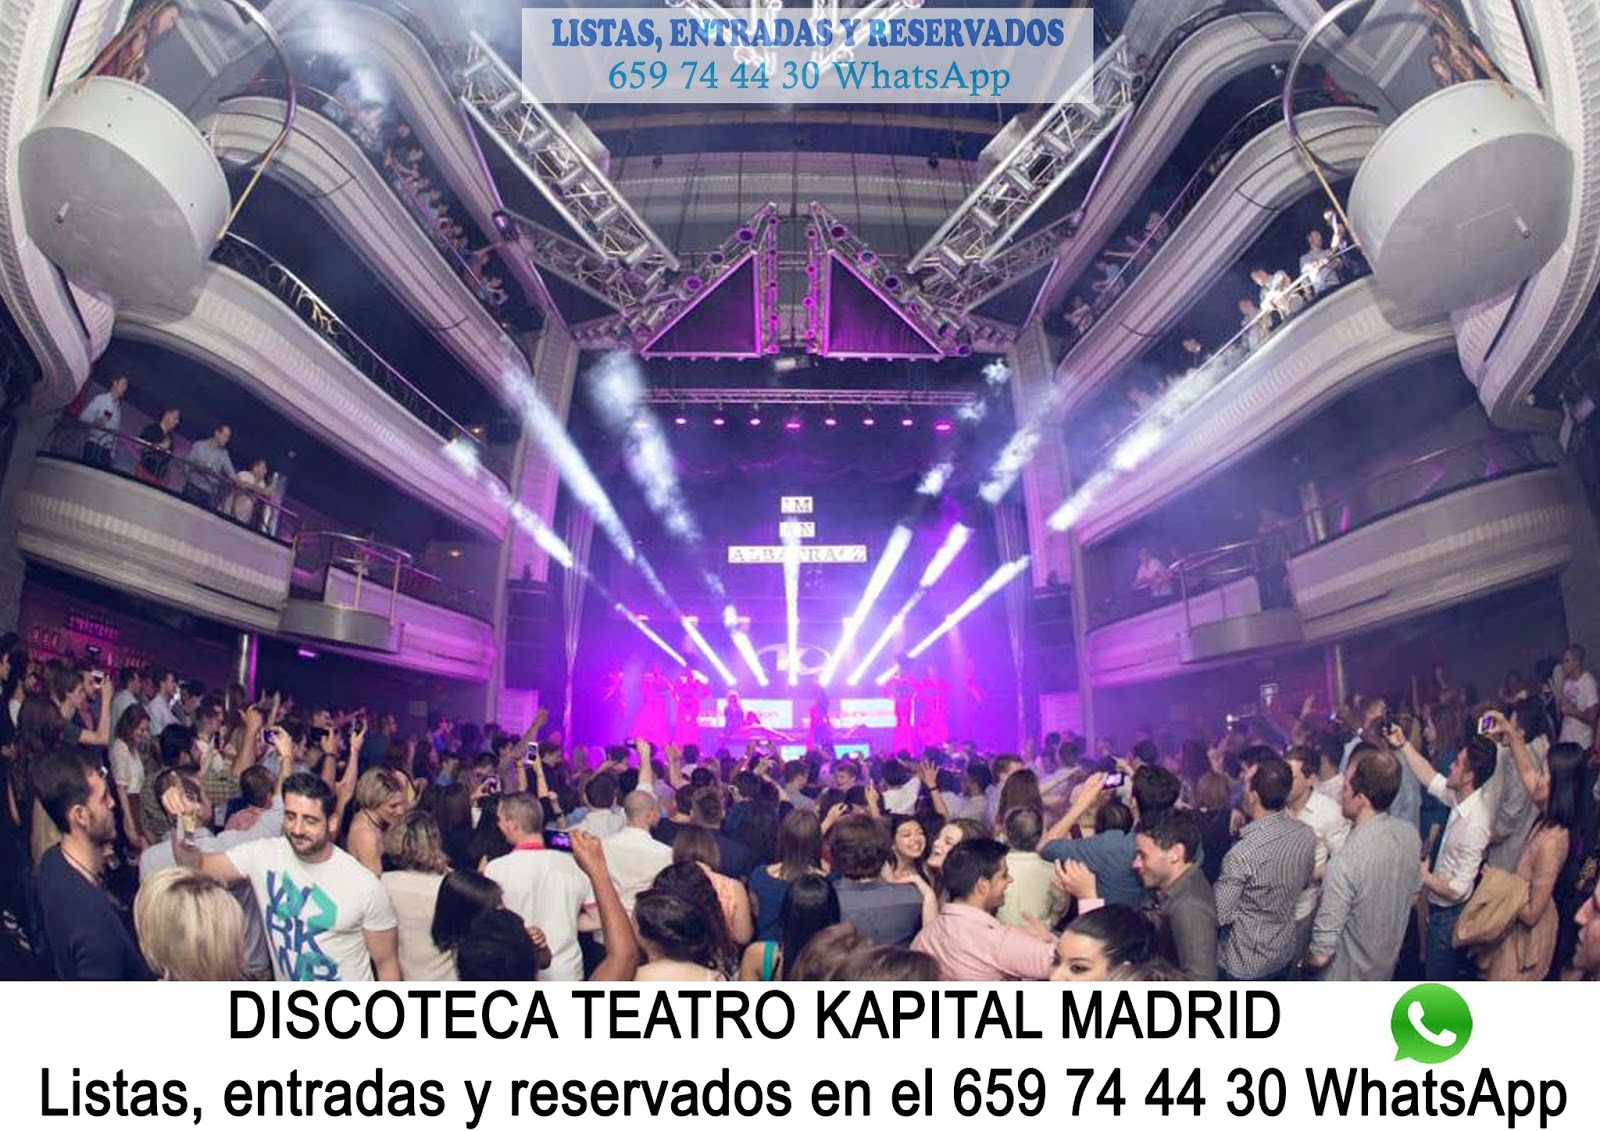 Discoteca Kapital Madrid 659 744 430 Whatsapp Lista